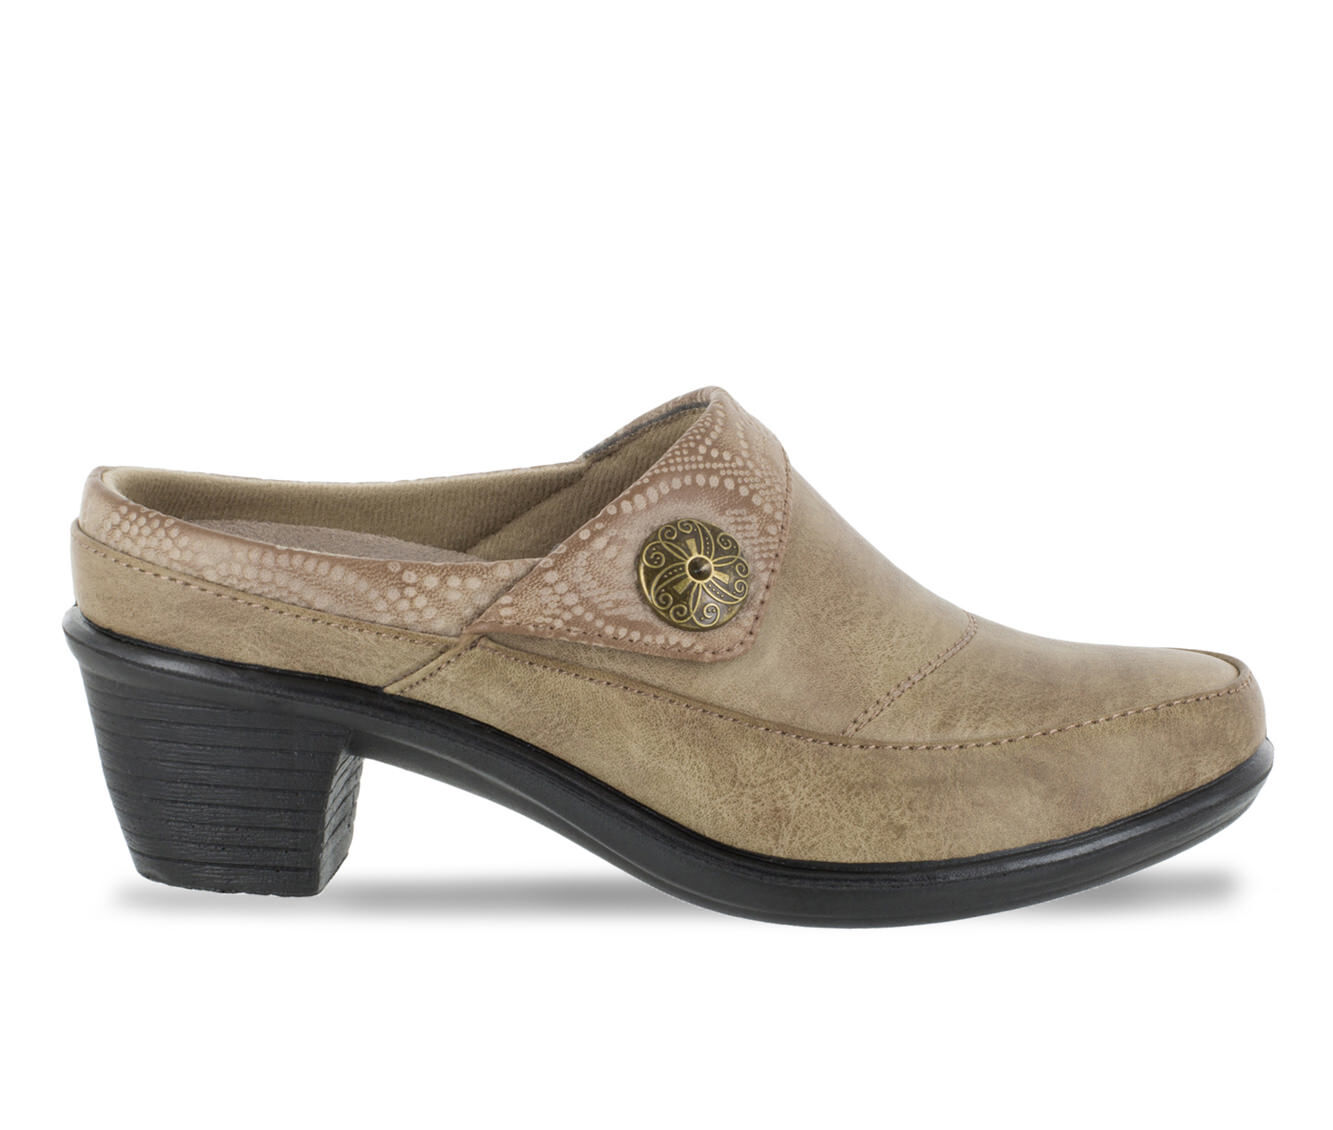 a large collections of Women's Easy Street Journey Shoes Taupe/Embossed